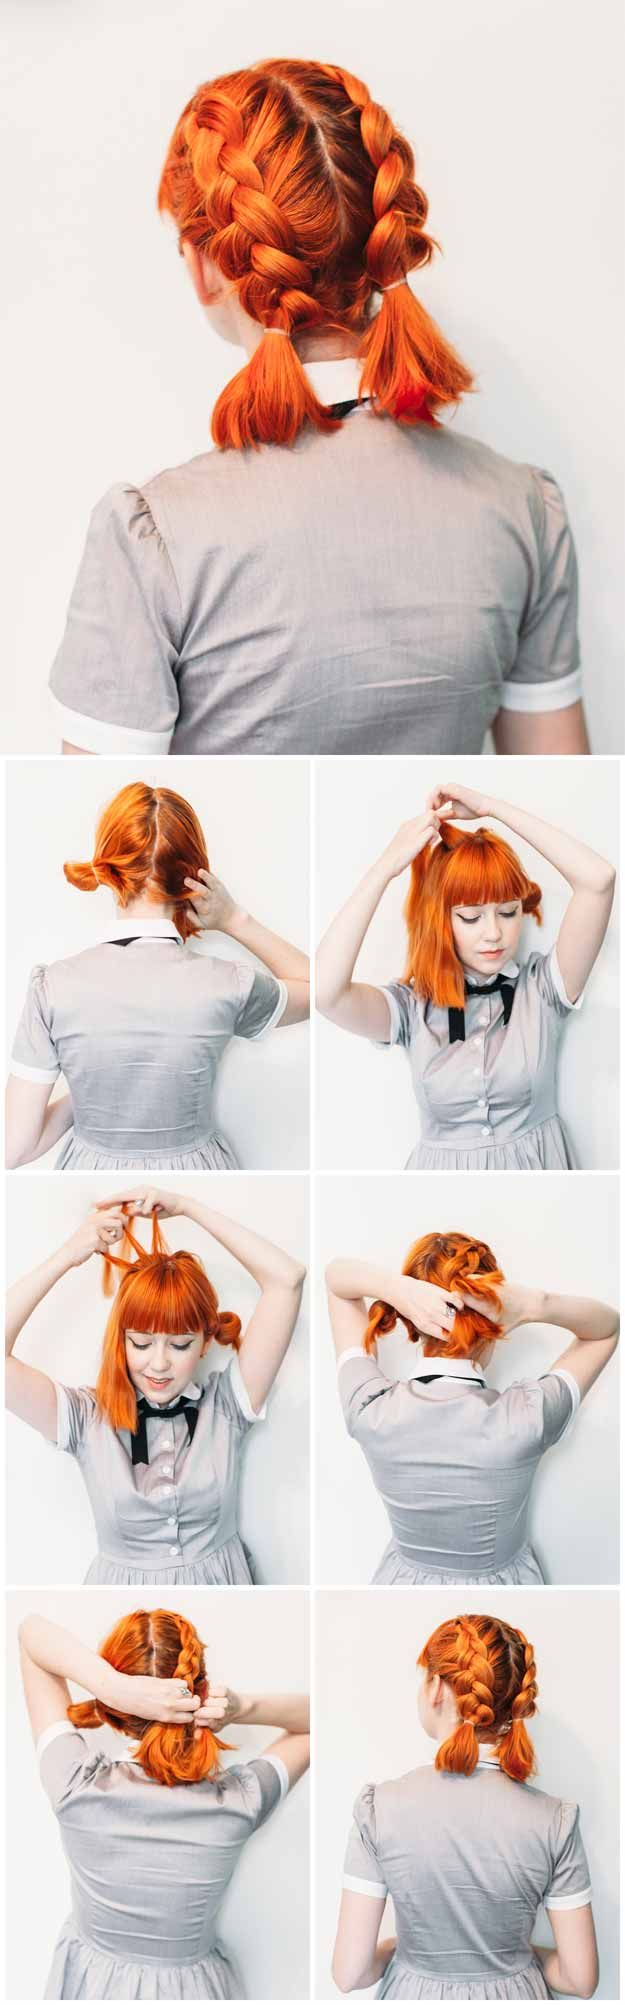 Best Hairstyles For Teens - Double Dutch Pigtails for Short Hair- Easy And Cute ...